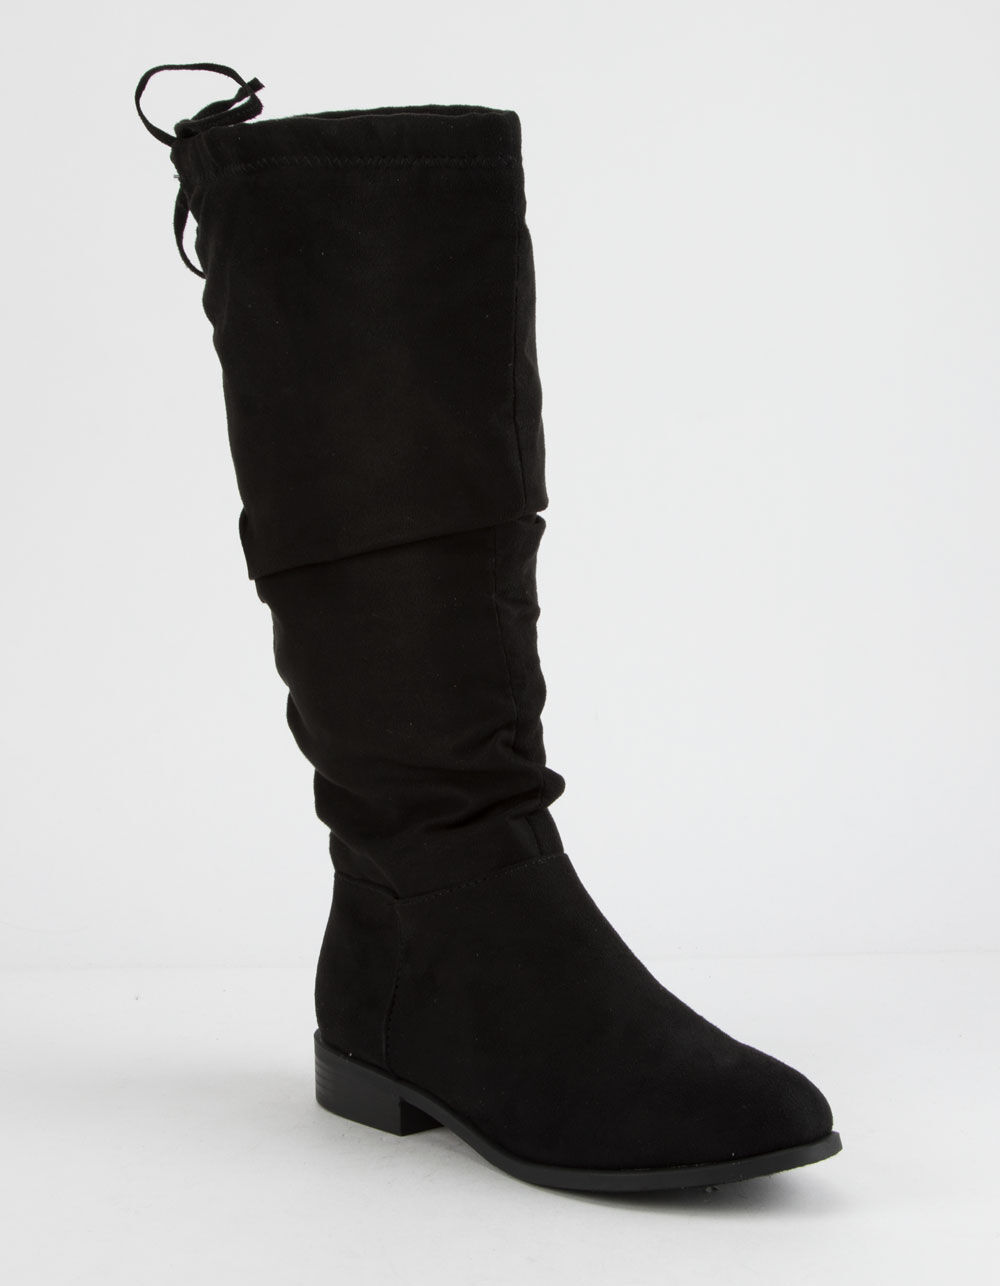 CITY CLASSIFIED Slouch Calf Black Boots